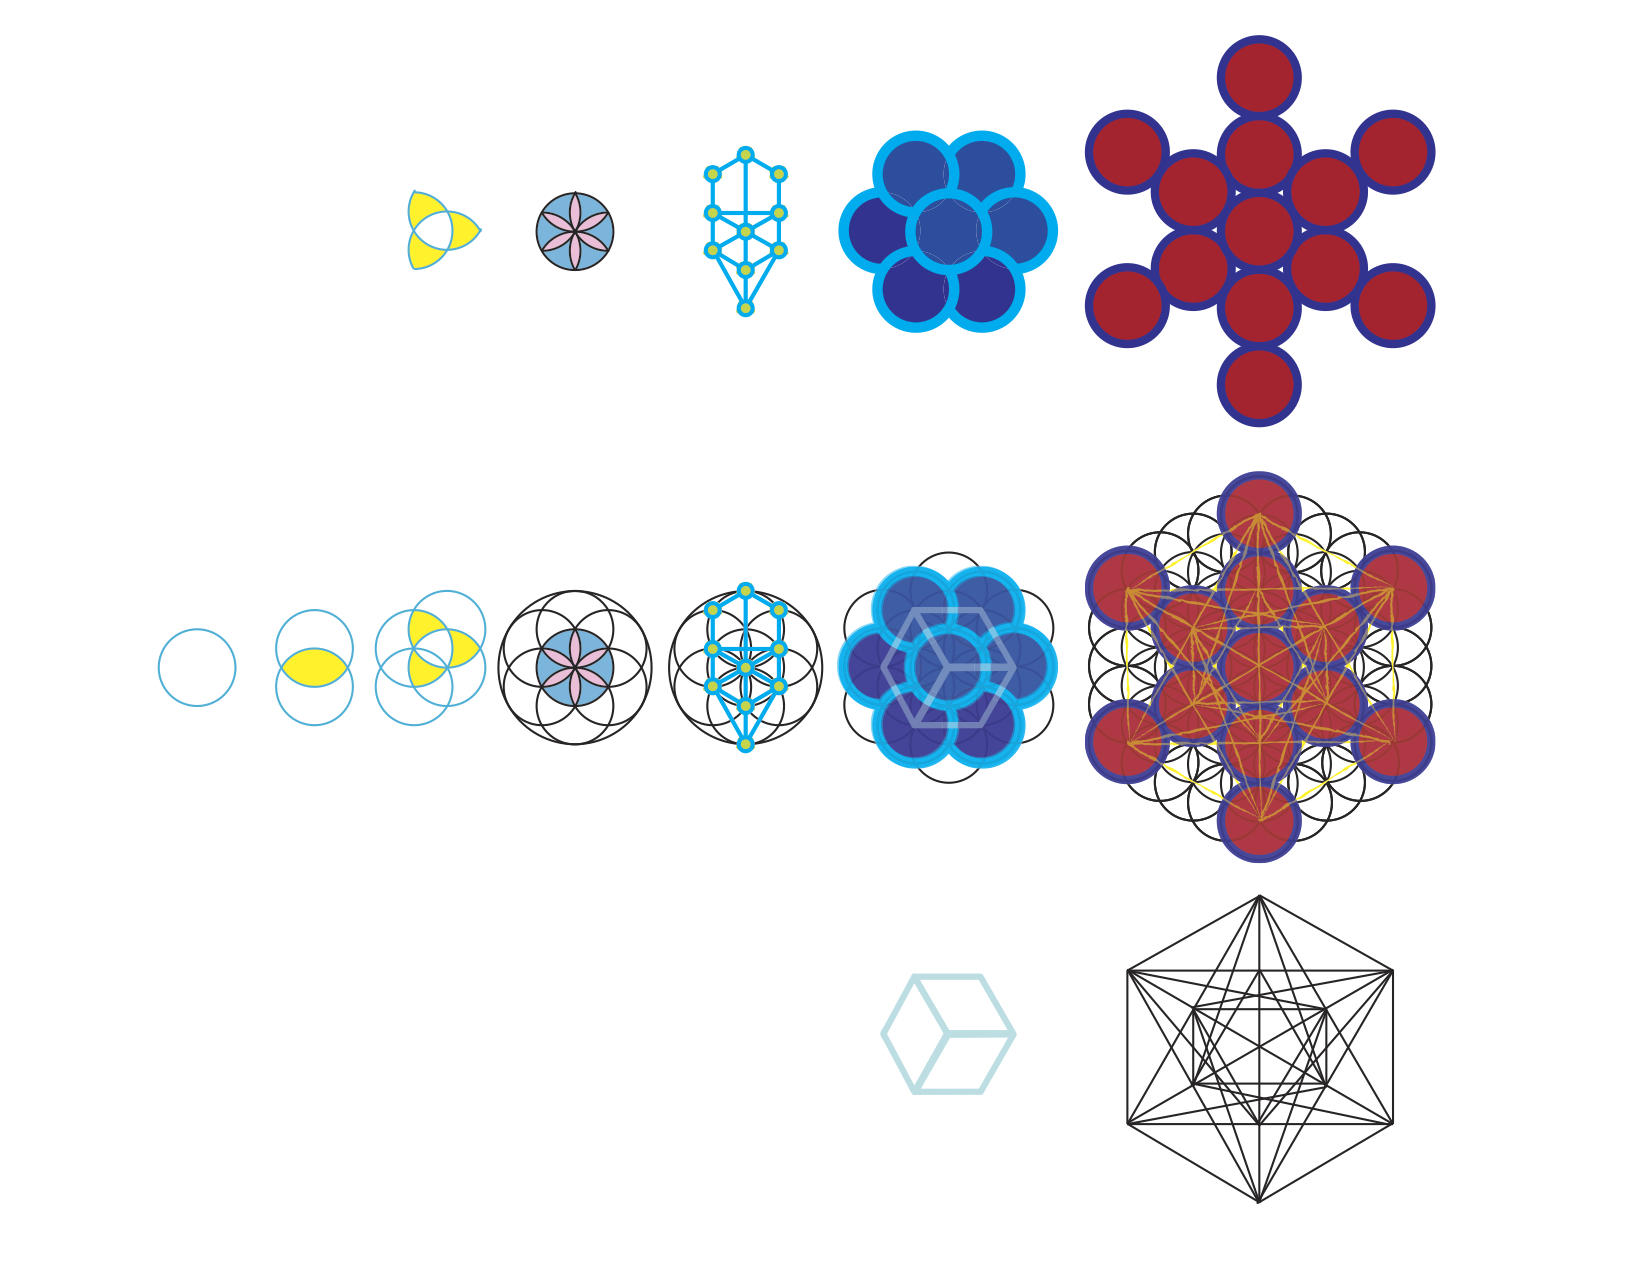 The Flower of Life - Creation